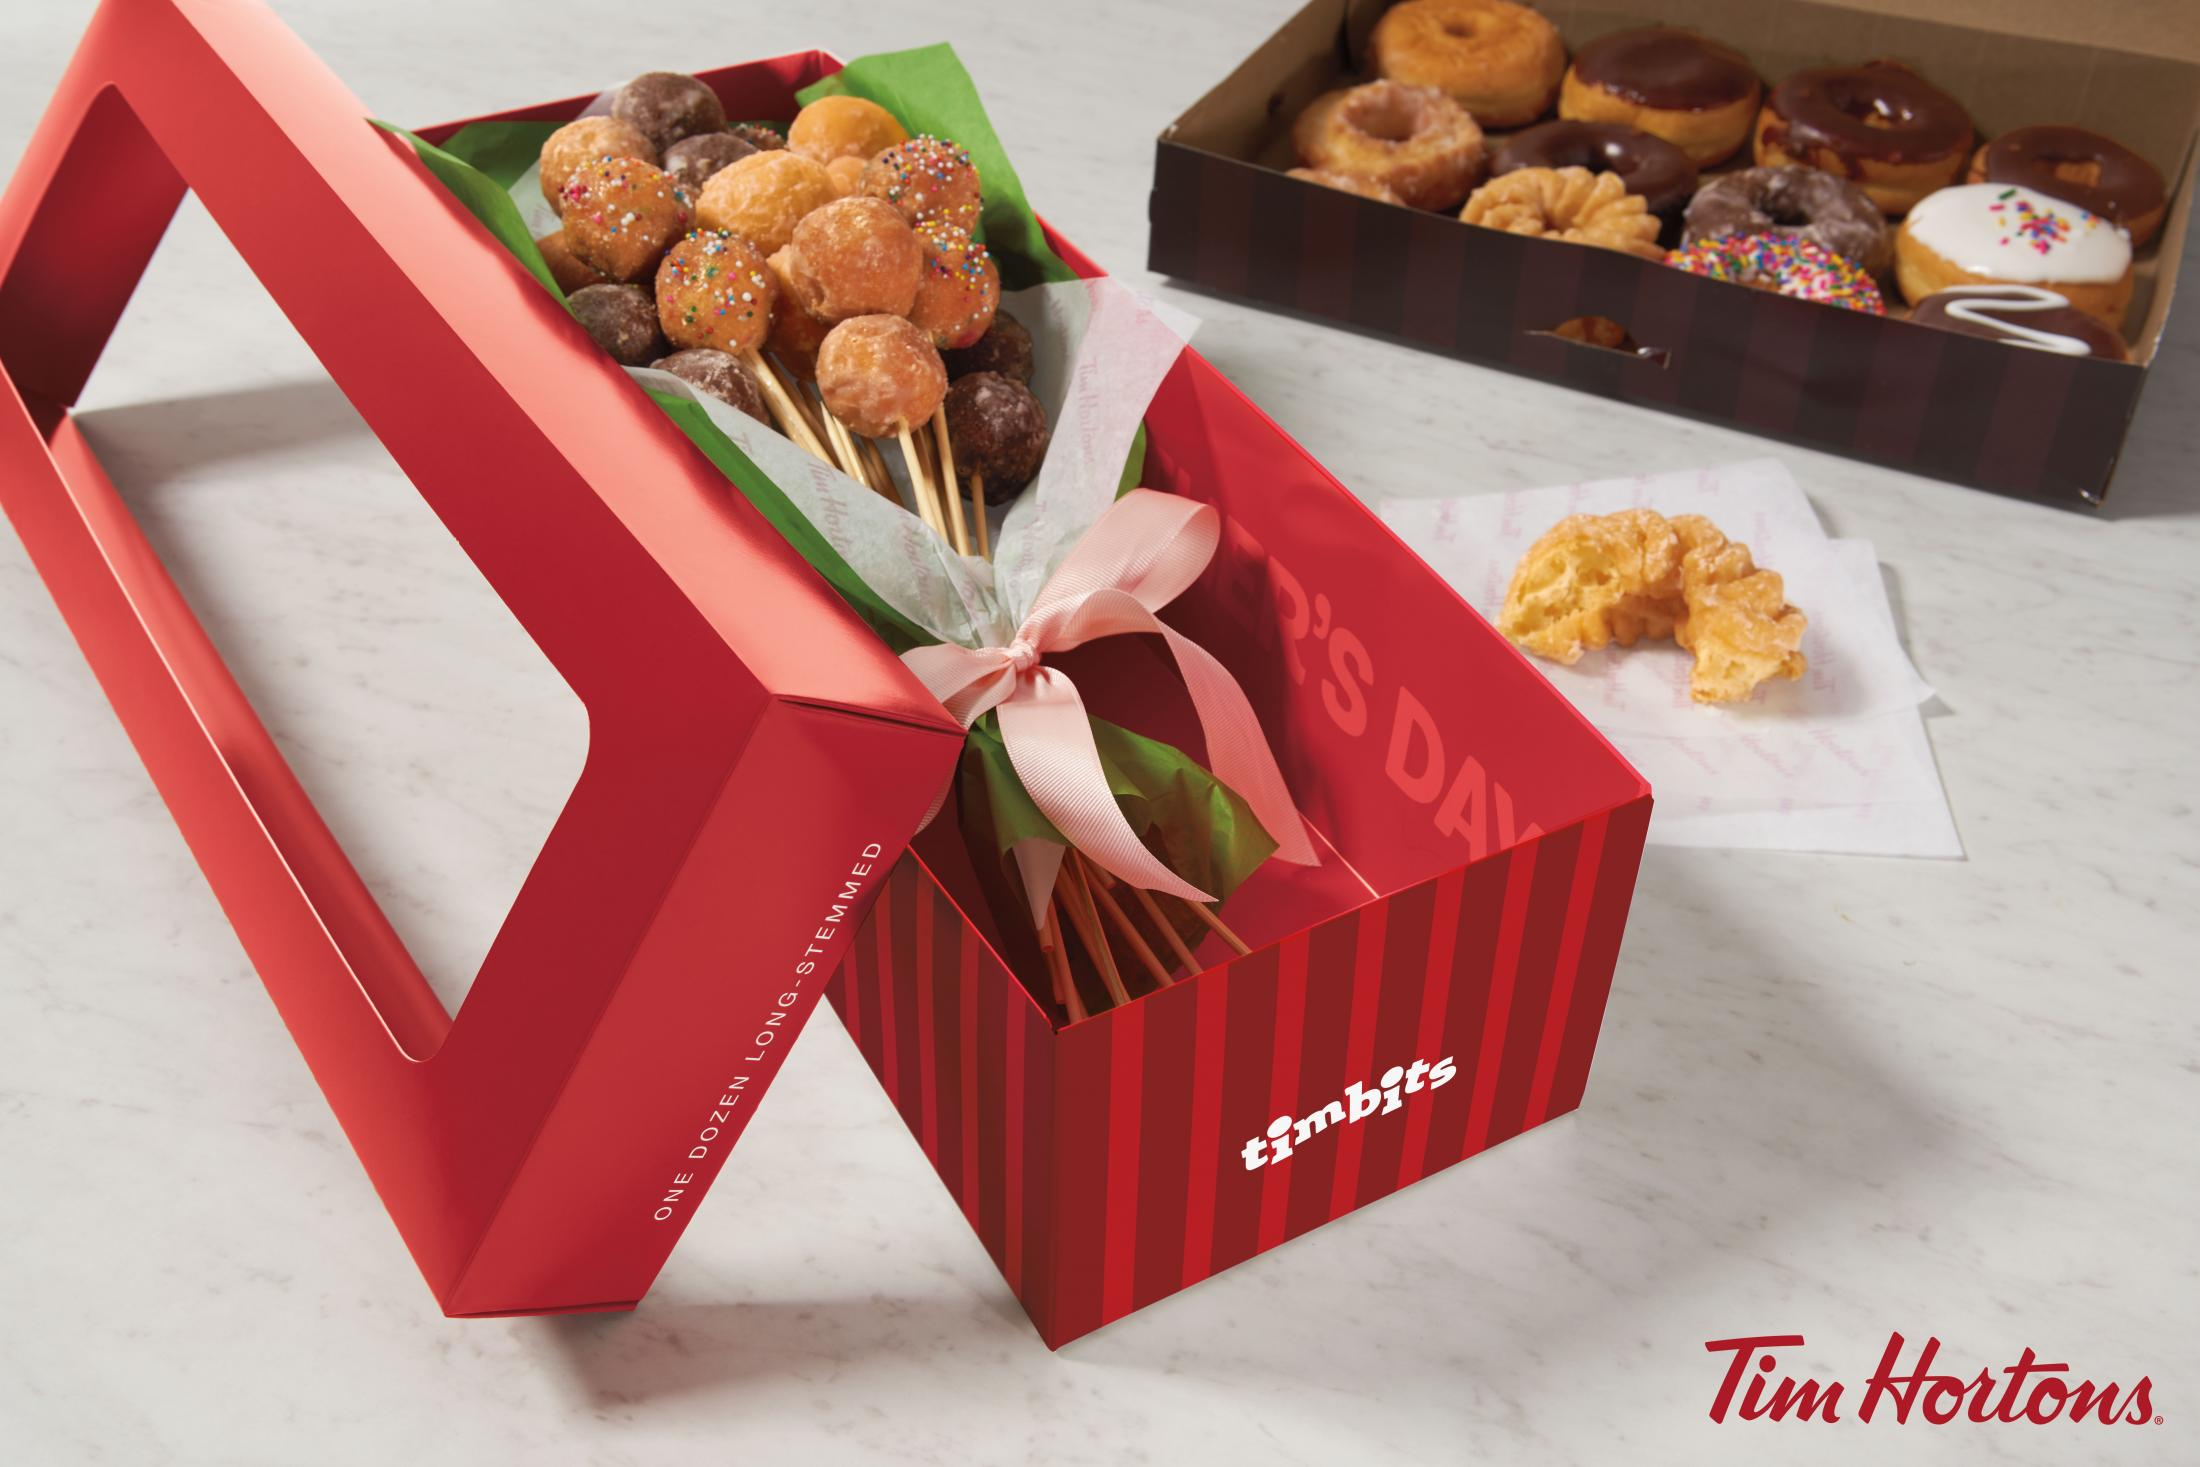 Tim Hortons Print Ad - Timbits Donut Bouquet